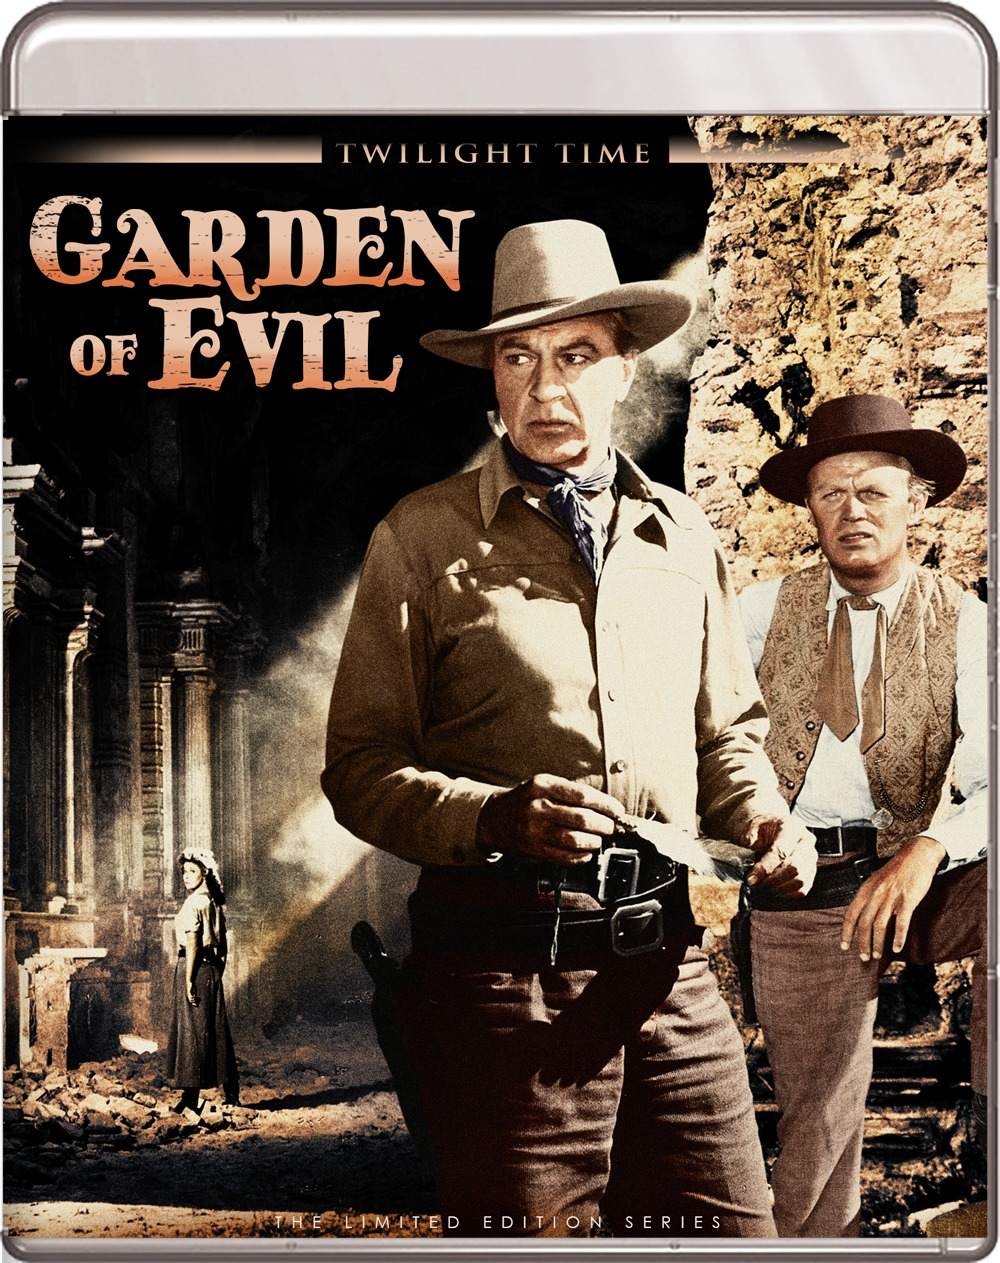 Garden of Evil Blu-ray: Limited Edition to 3000